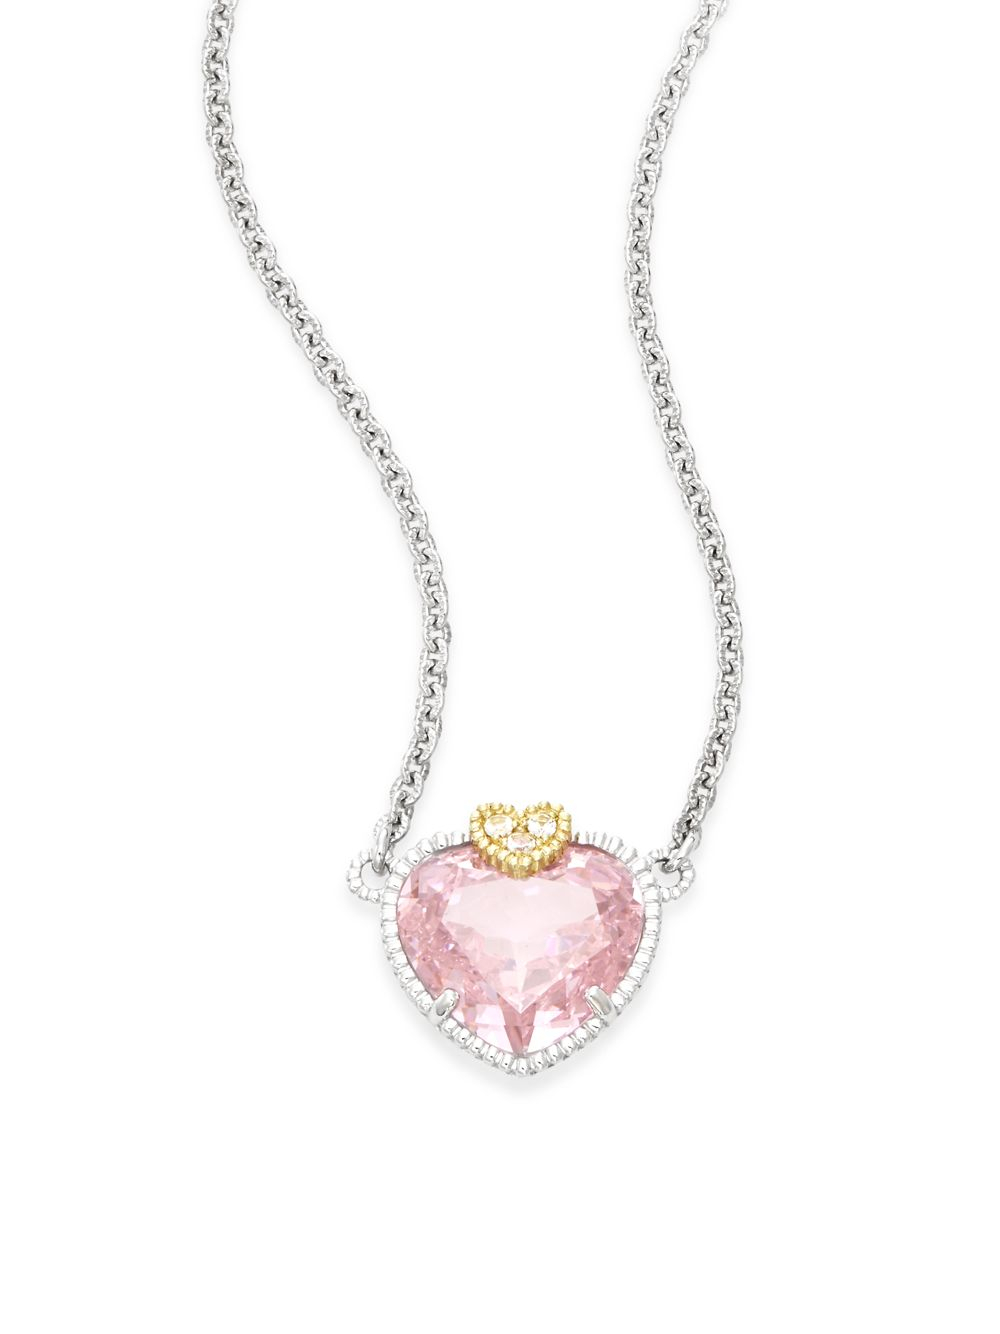 couture heart ripka judith necklace pendant gold yellow diamond